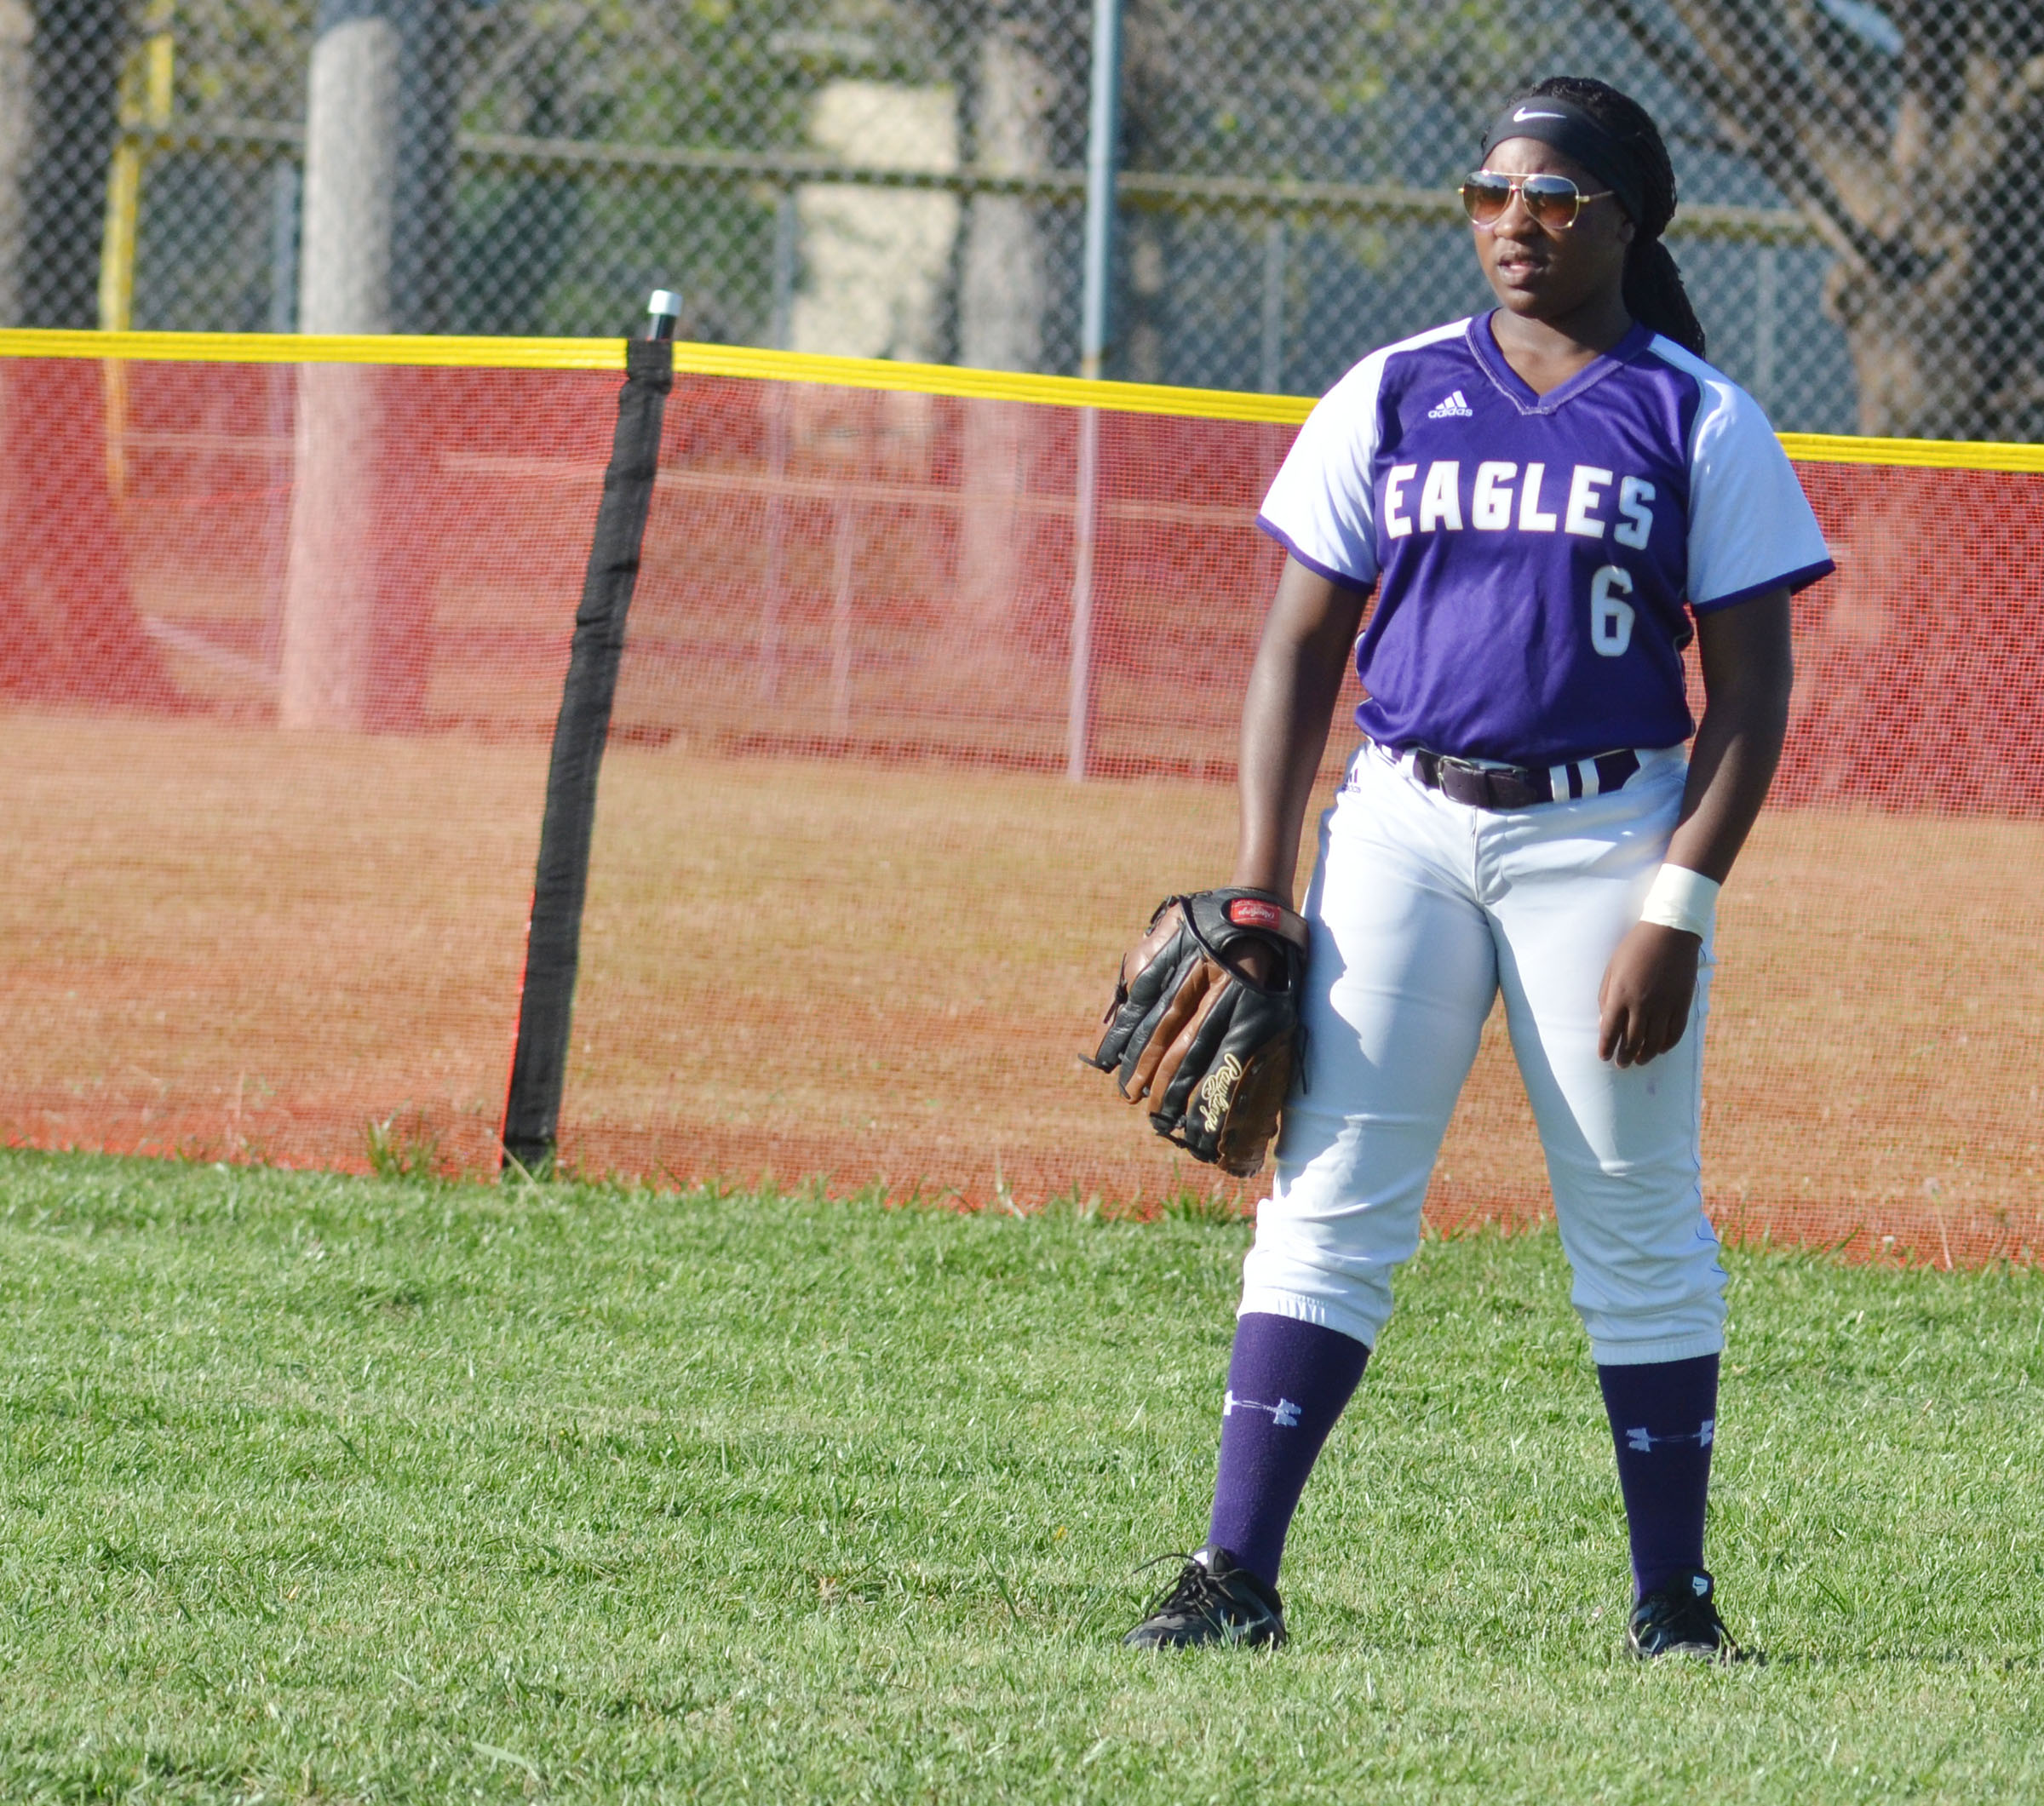 CHS junior Kiyah Barnett plays in the outfield.